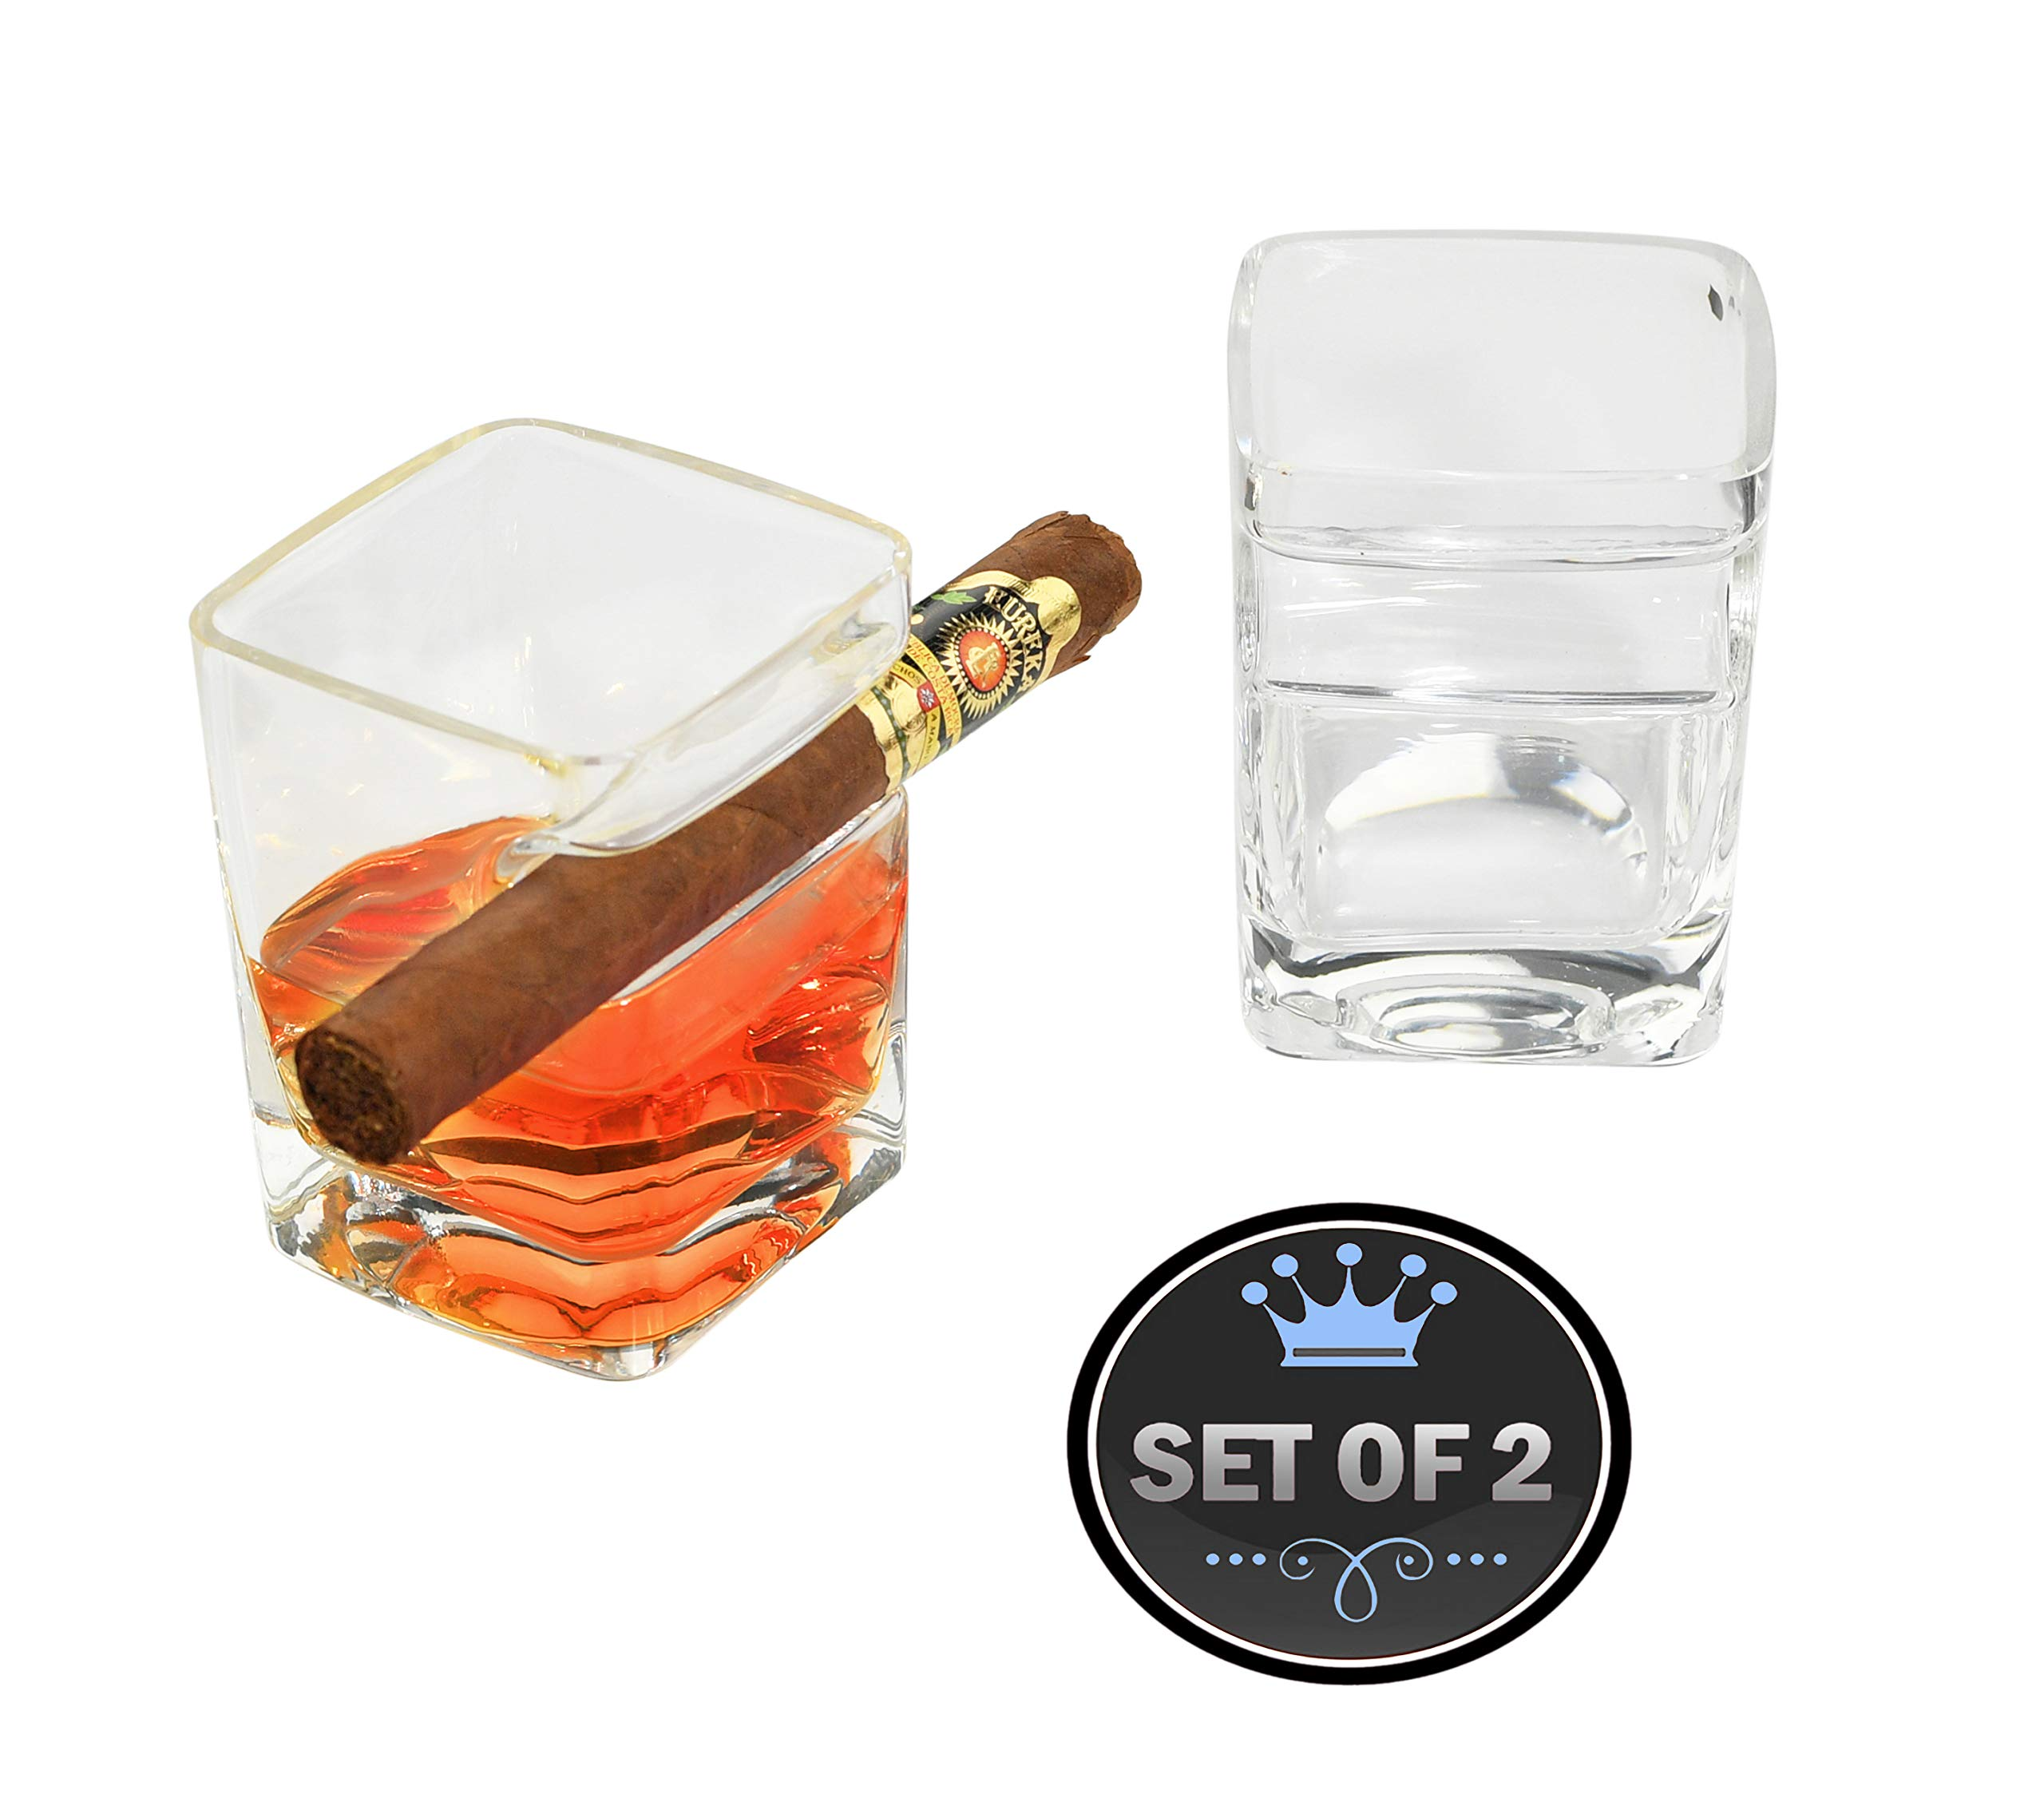 ARAD Cigar Holder and Drinking Glass, Smoking Accessories (2 Pack)